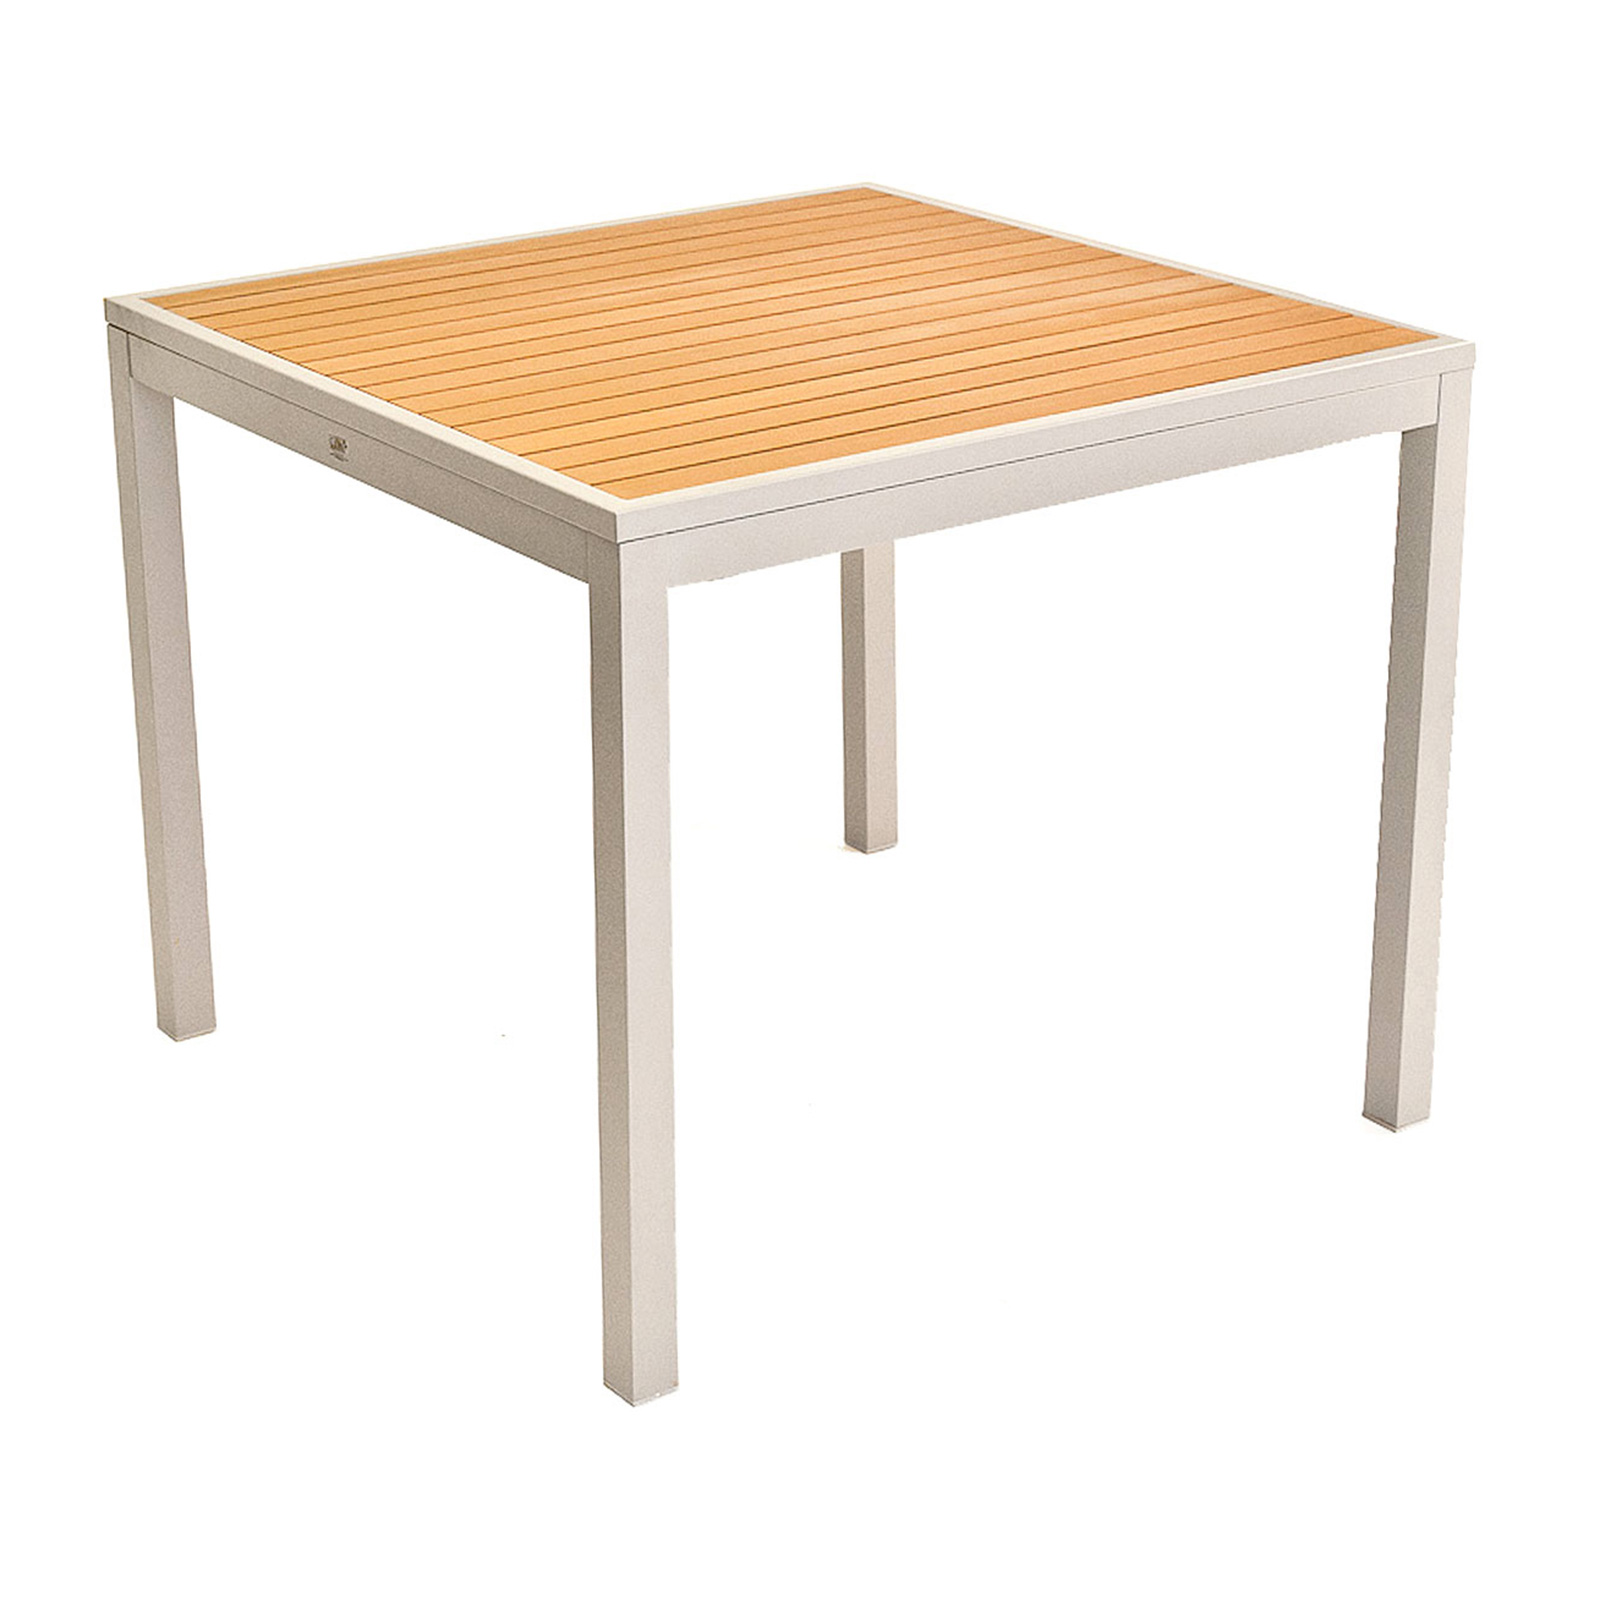 Florida Seating TEAK INLAY36X36 table, outdoor